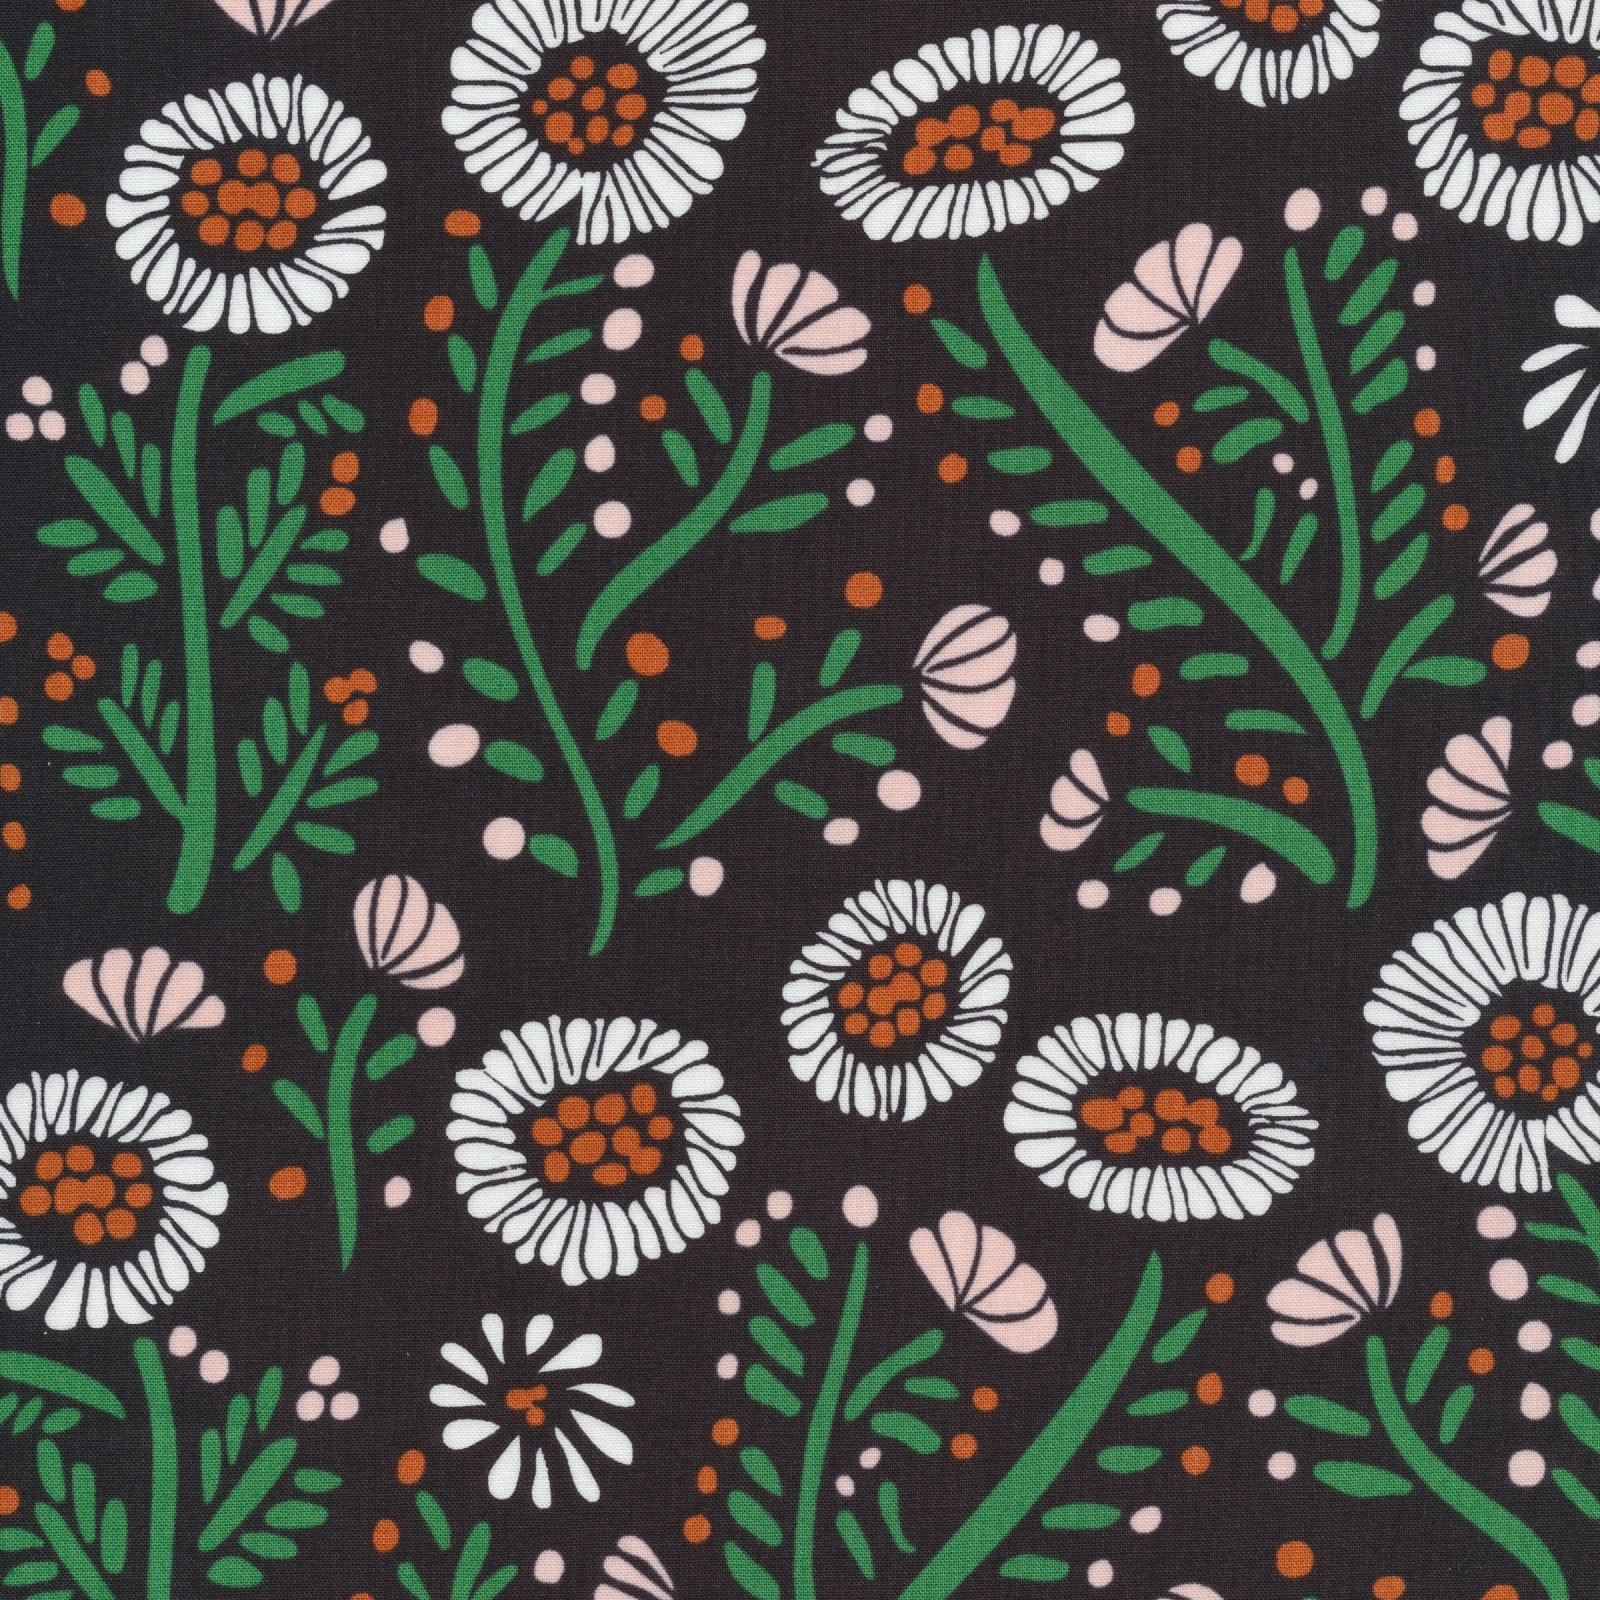 Floral Stitches, Black, Fanciful